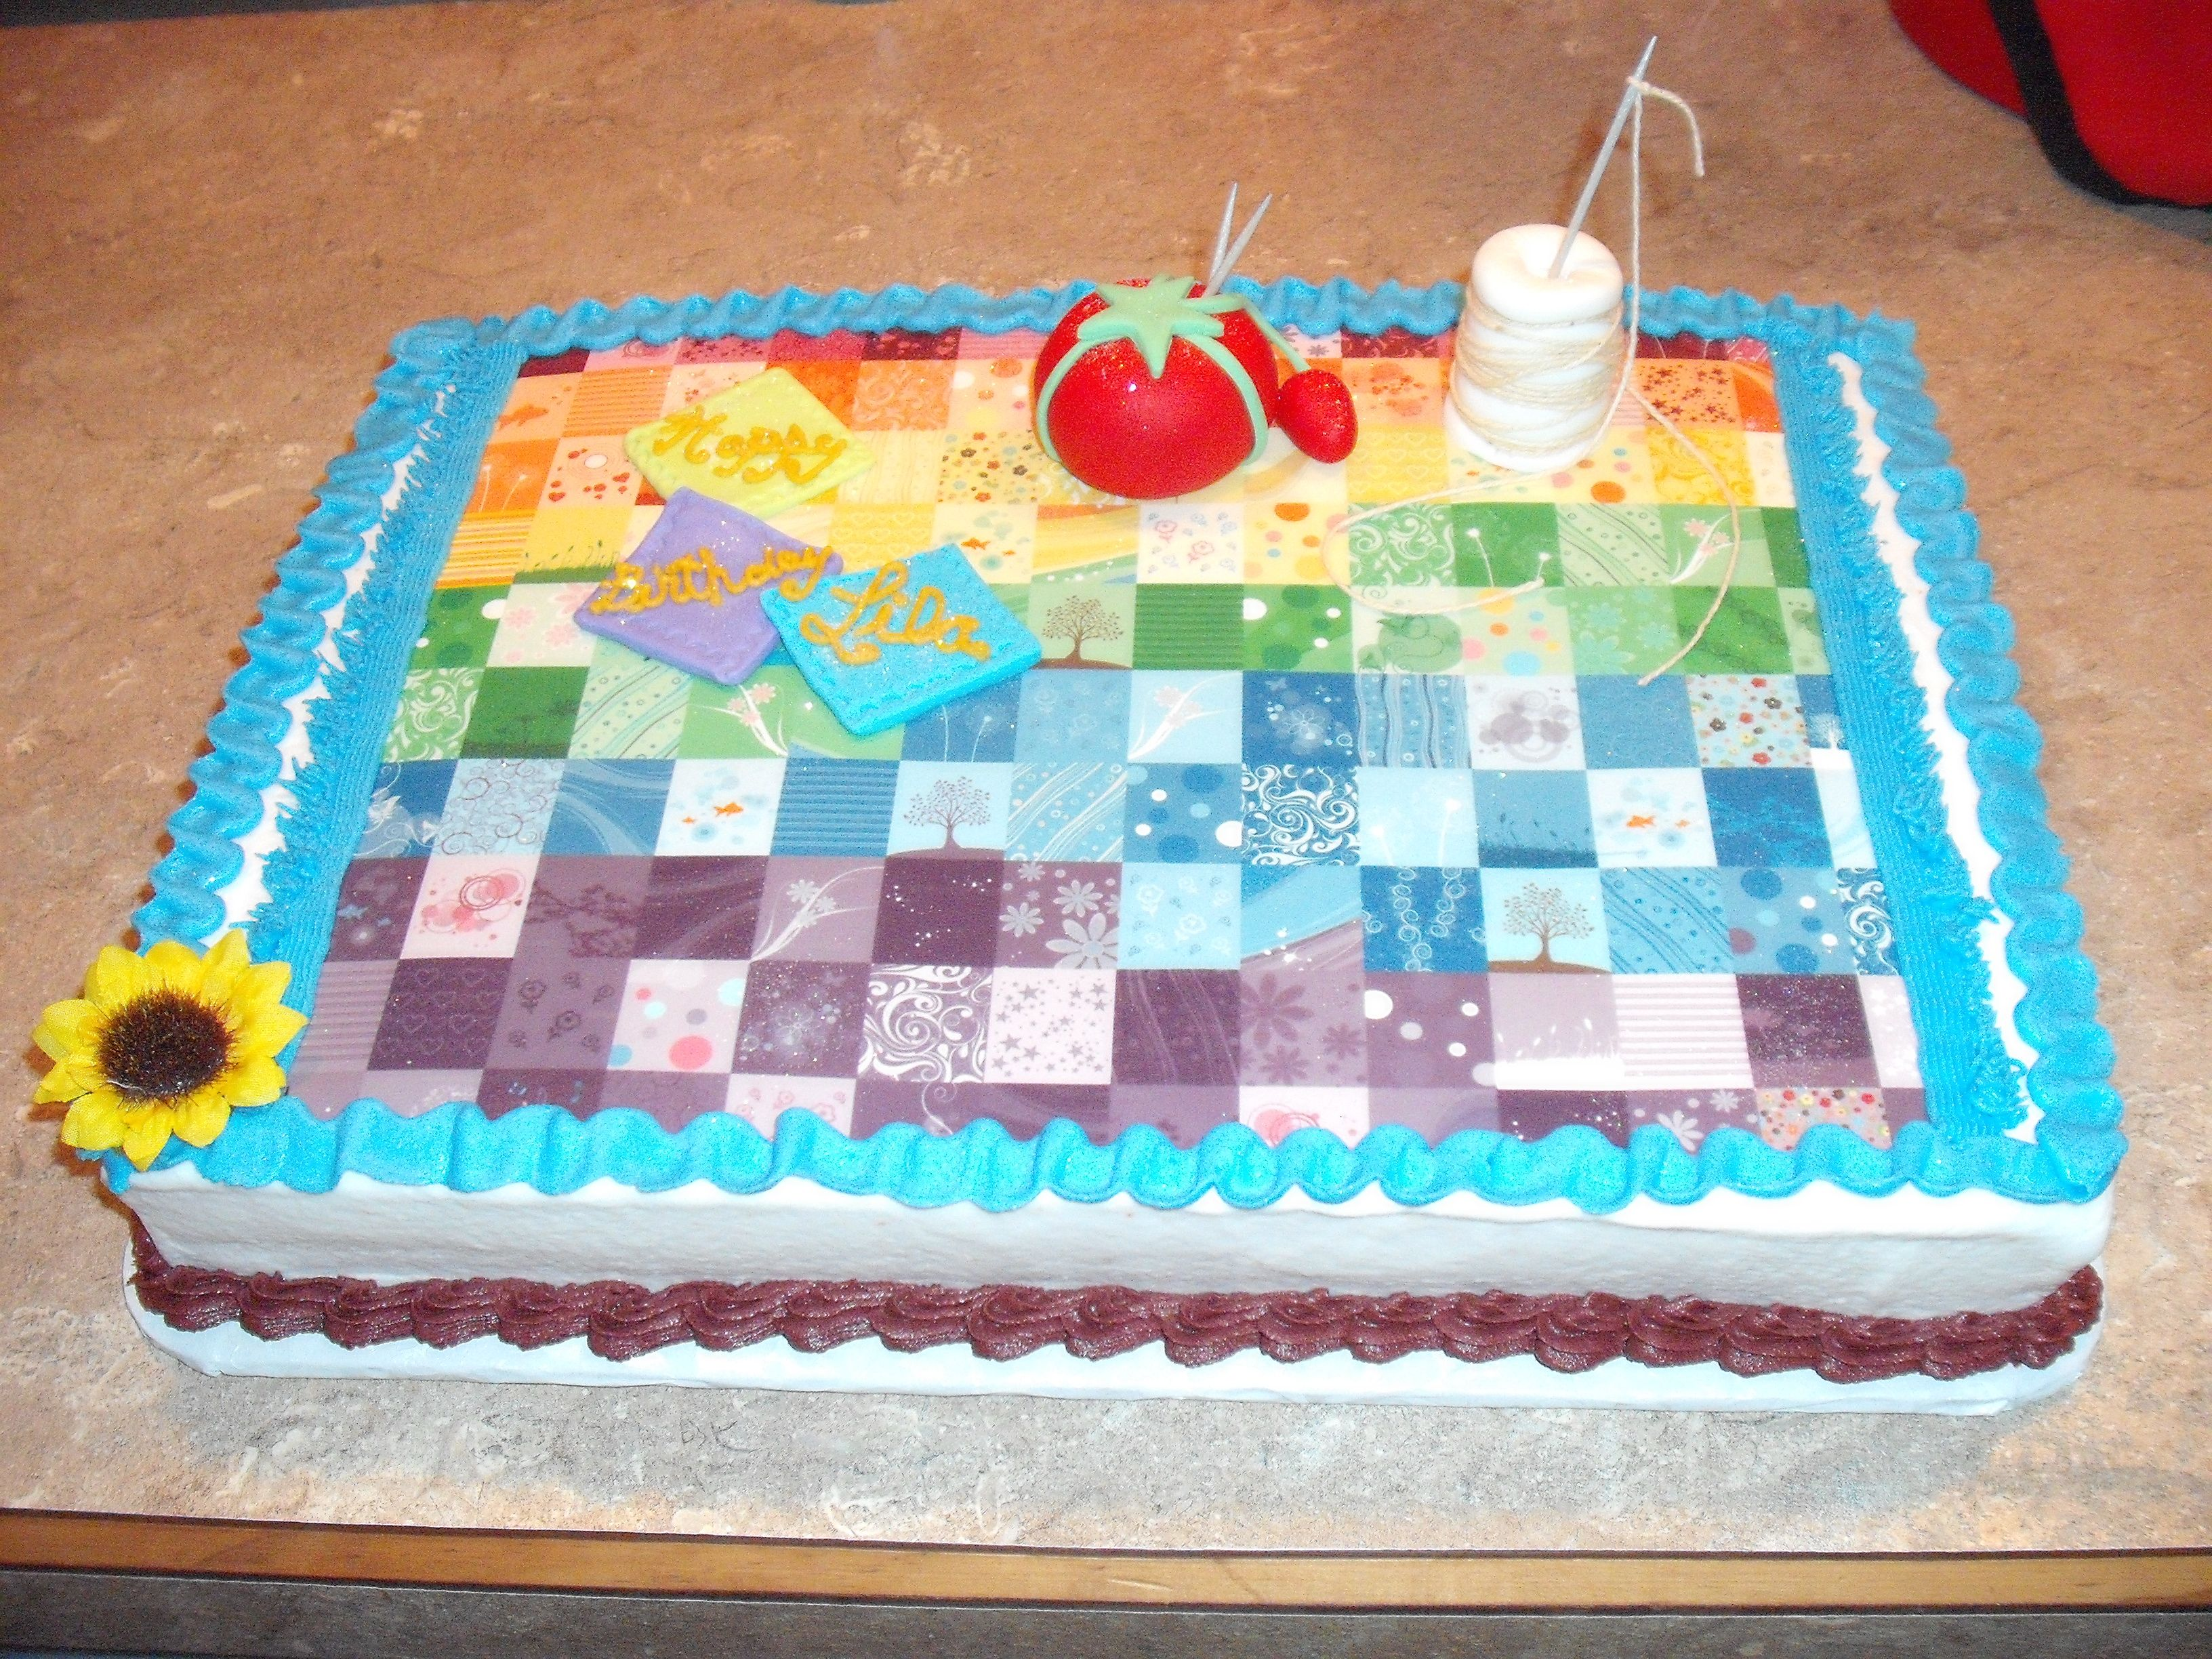 Quilting Cake Decorating : Quilting themed birthday cake! Cake decorating ideas Pinterest Birthday cakes, Birthdays ...